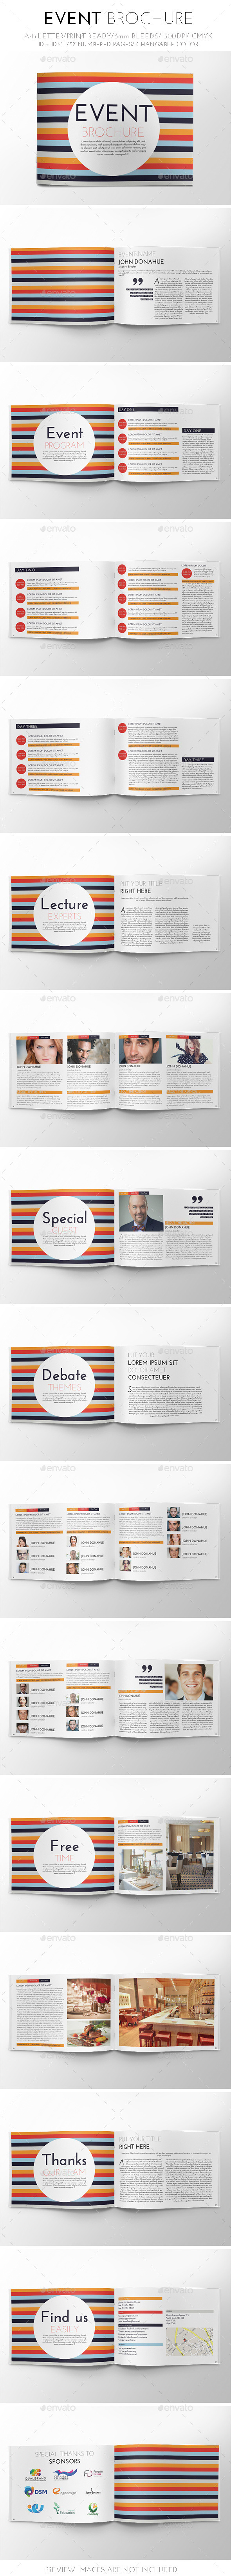 Event Brochure Template - Brochures Print Templates